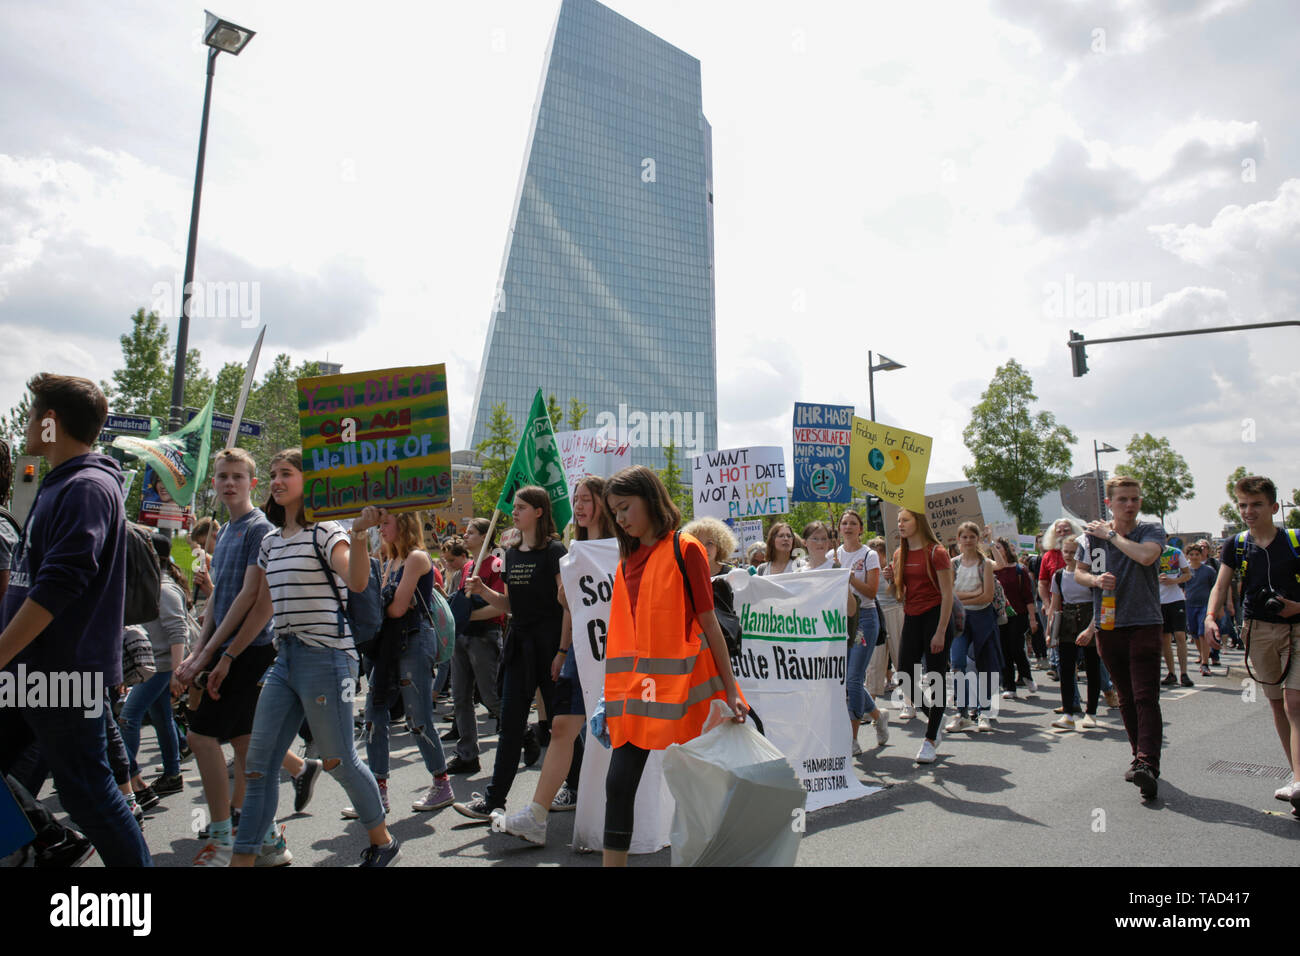 Frankfurt, Germany. 24th May 2019. The protesters march with self-made signs past the ECB (European Central Bank) building. Around 4,500 young people marched through Frankfurt to the European Central Bank, to protest against the climate change and for the introduction of measurements against it. The protest took place as part of an Europe wide climate strike, two days ahead of the 2019 European elections. - Stock Image